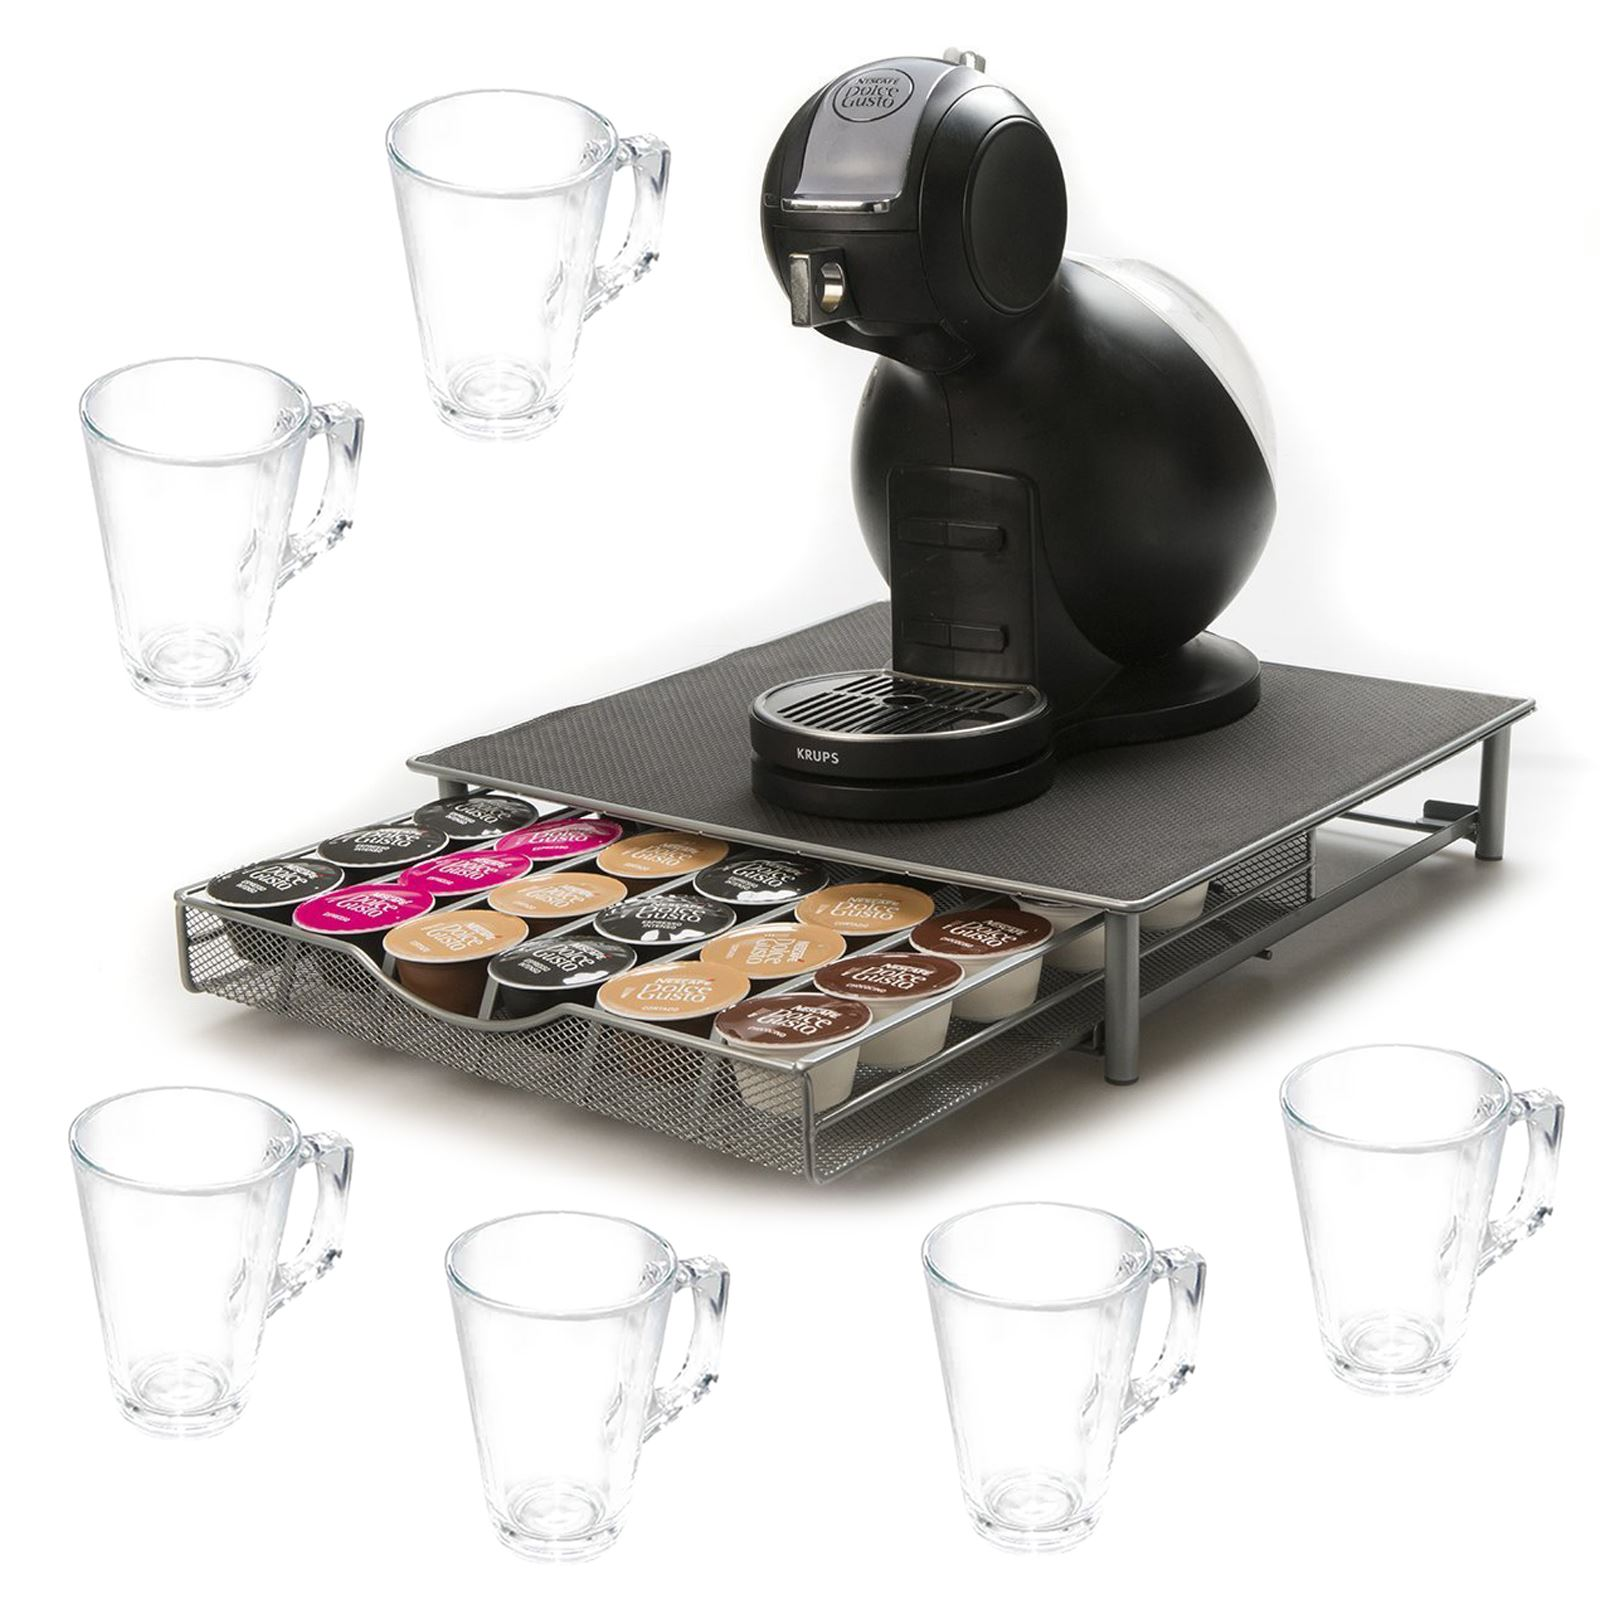 Dolce Gusto Glass Holder